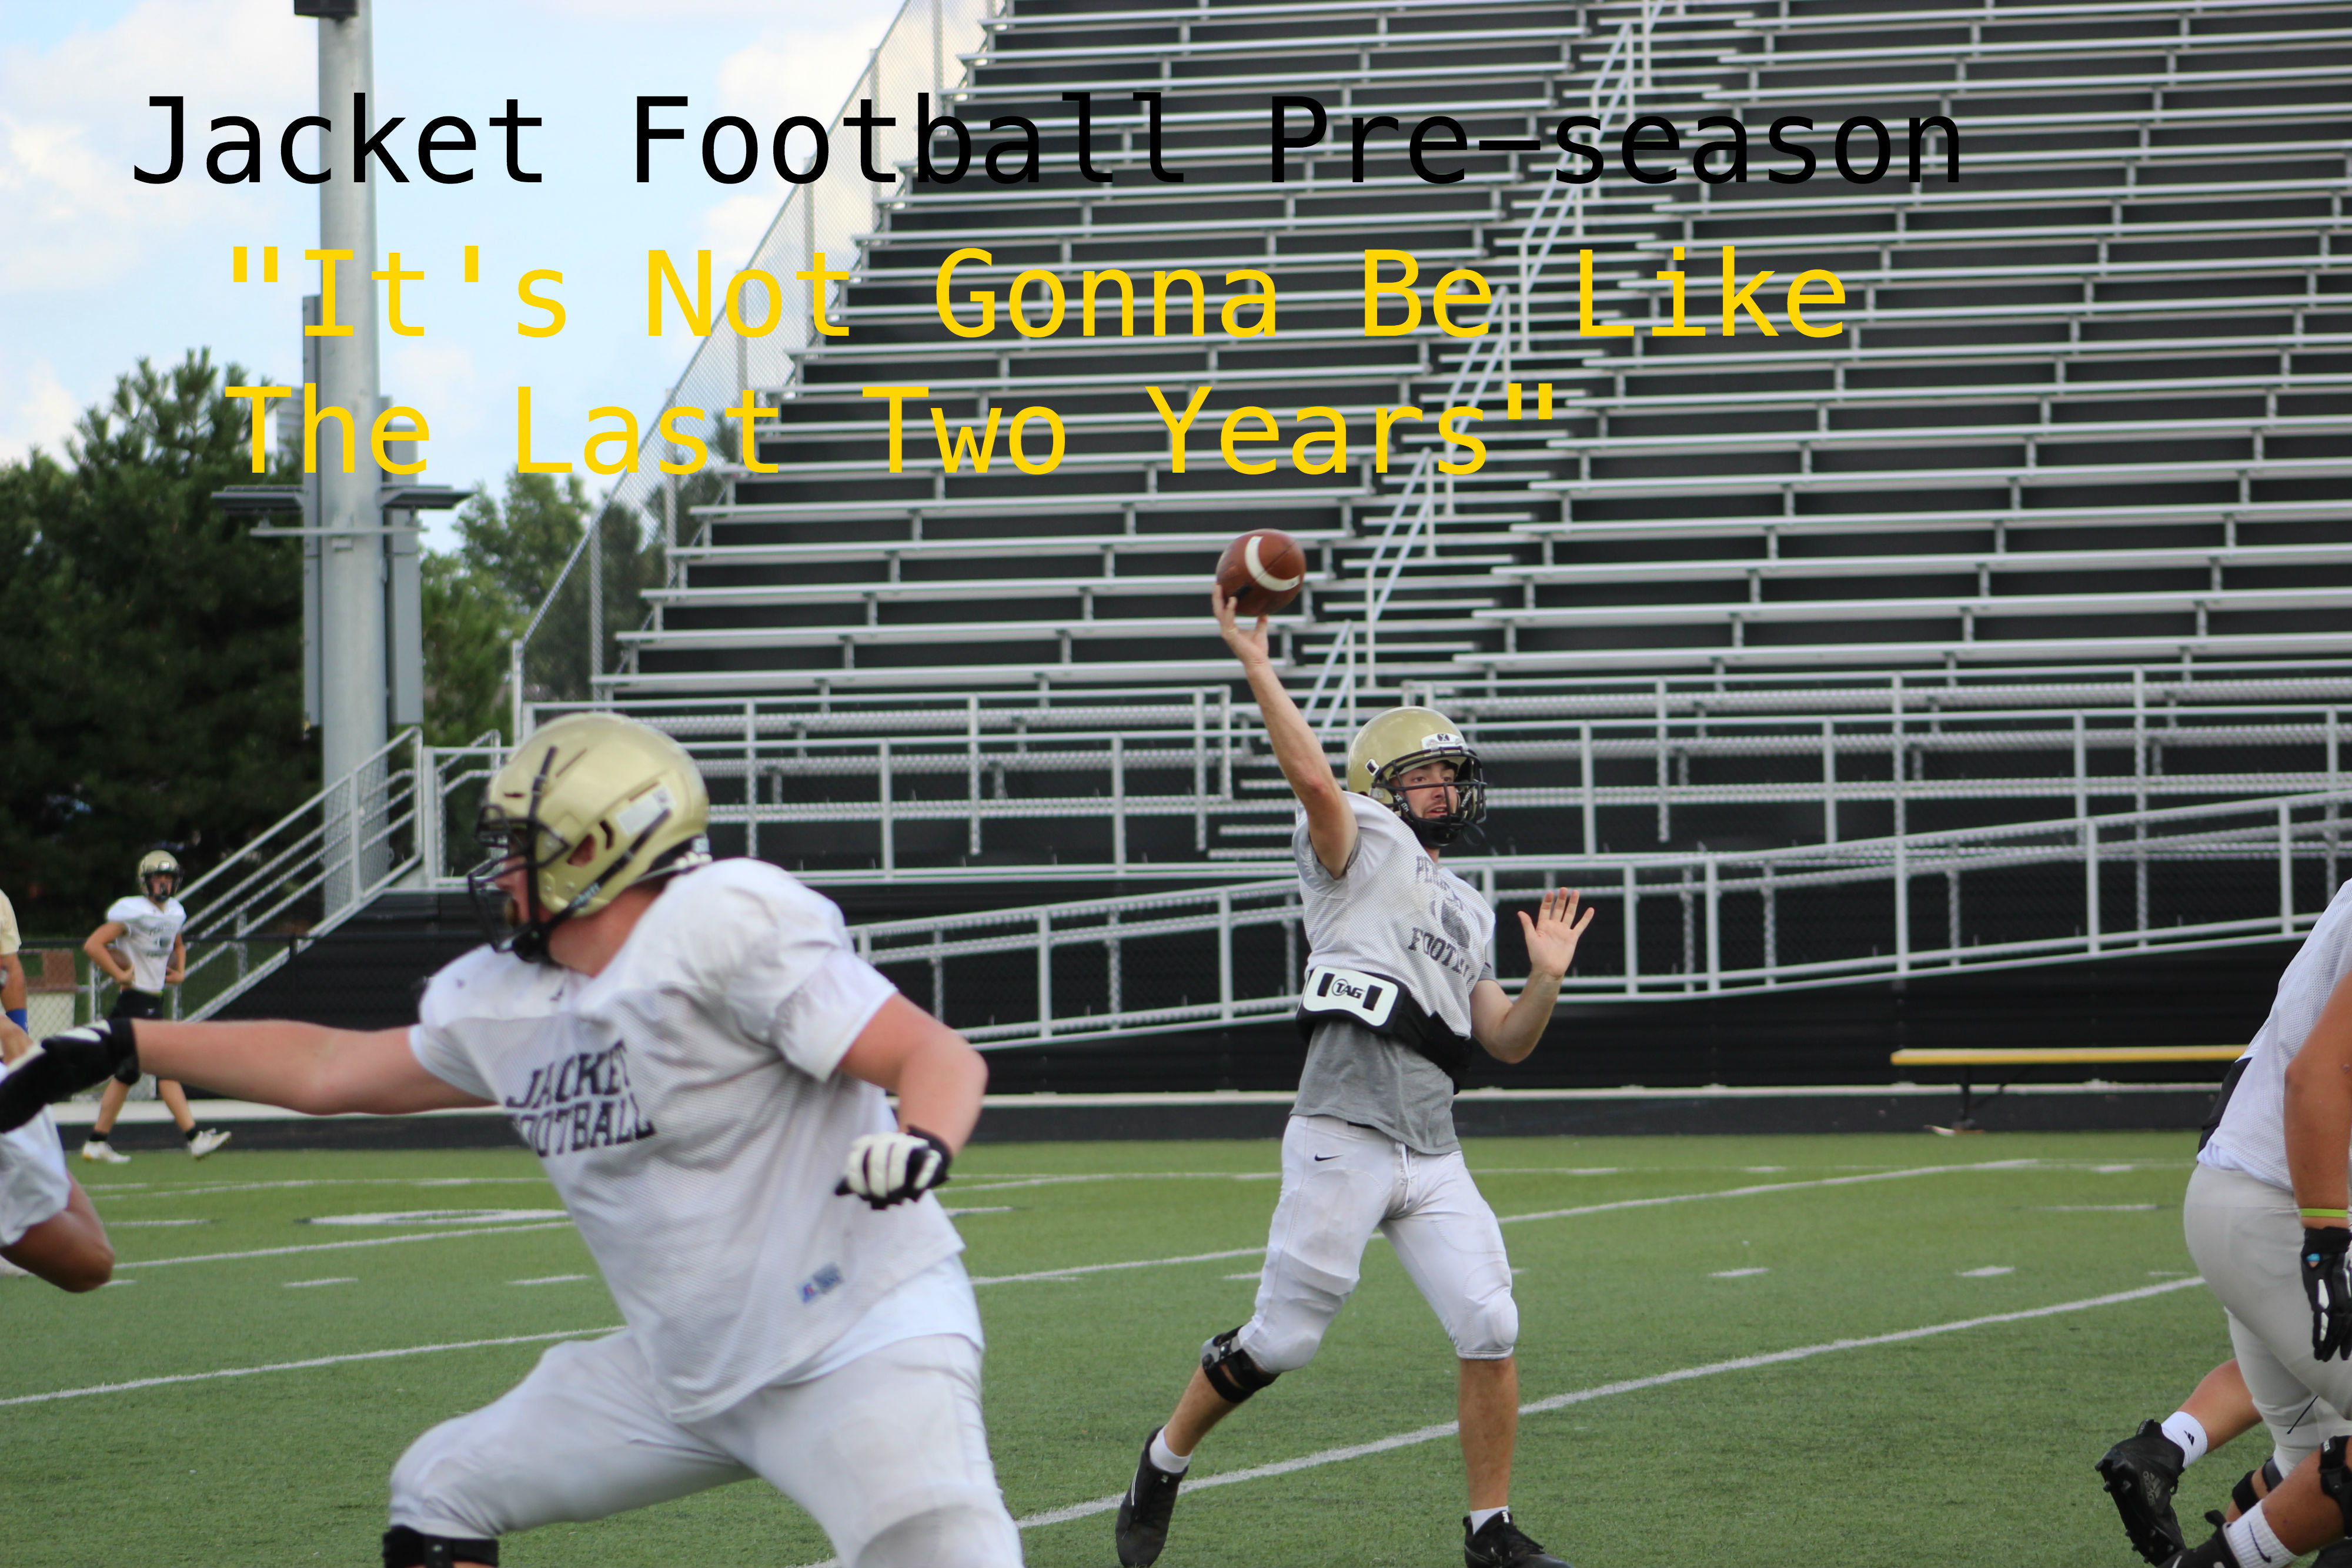 """It's not gonna be like the last two years"" The Jacket football pre-season"